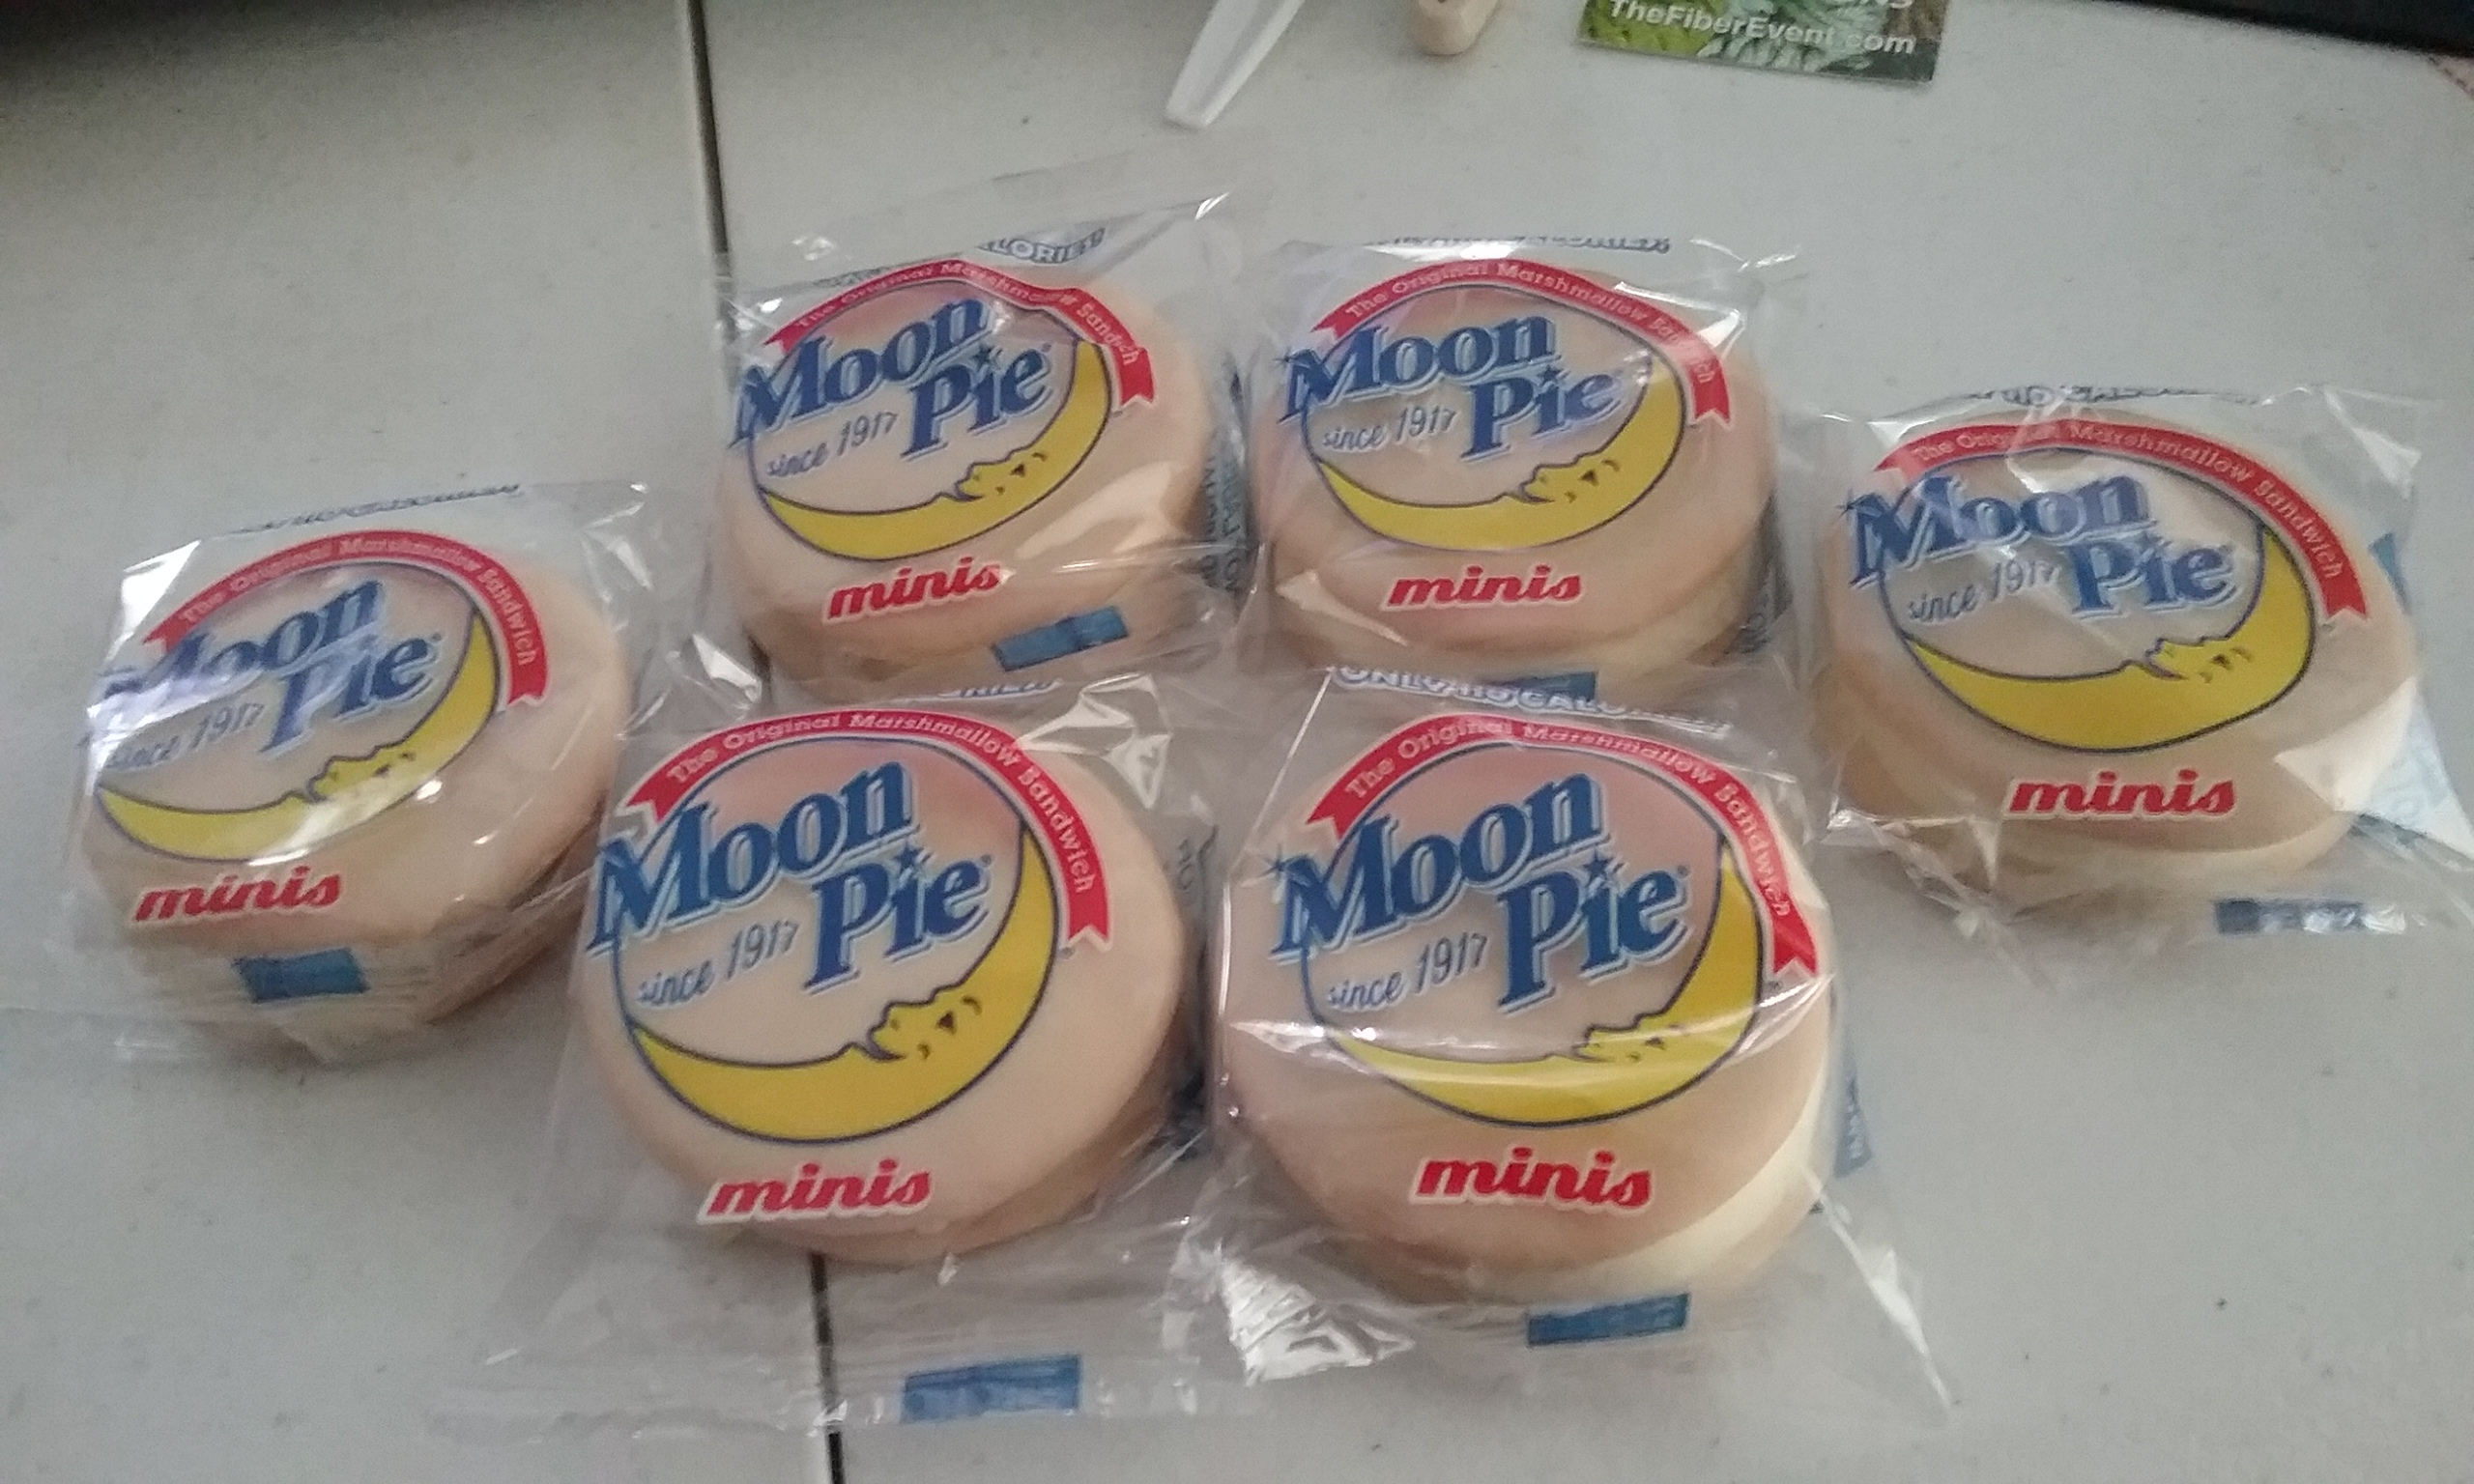 the Moon Pie minis that I bought at the Family Dollar store